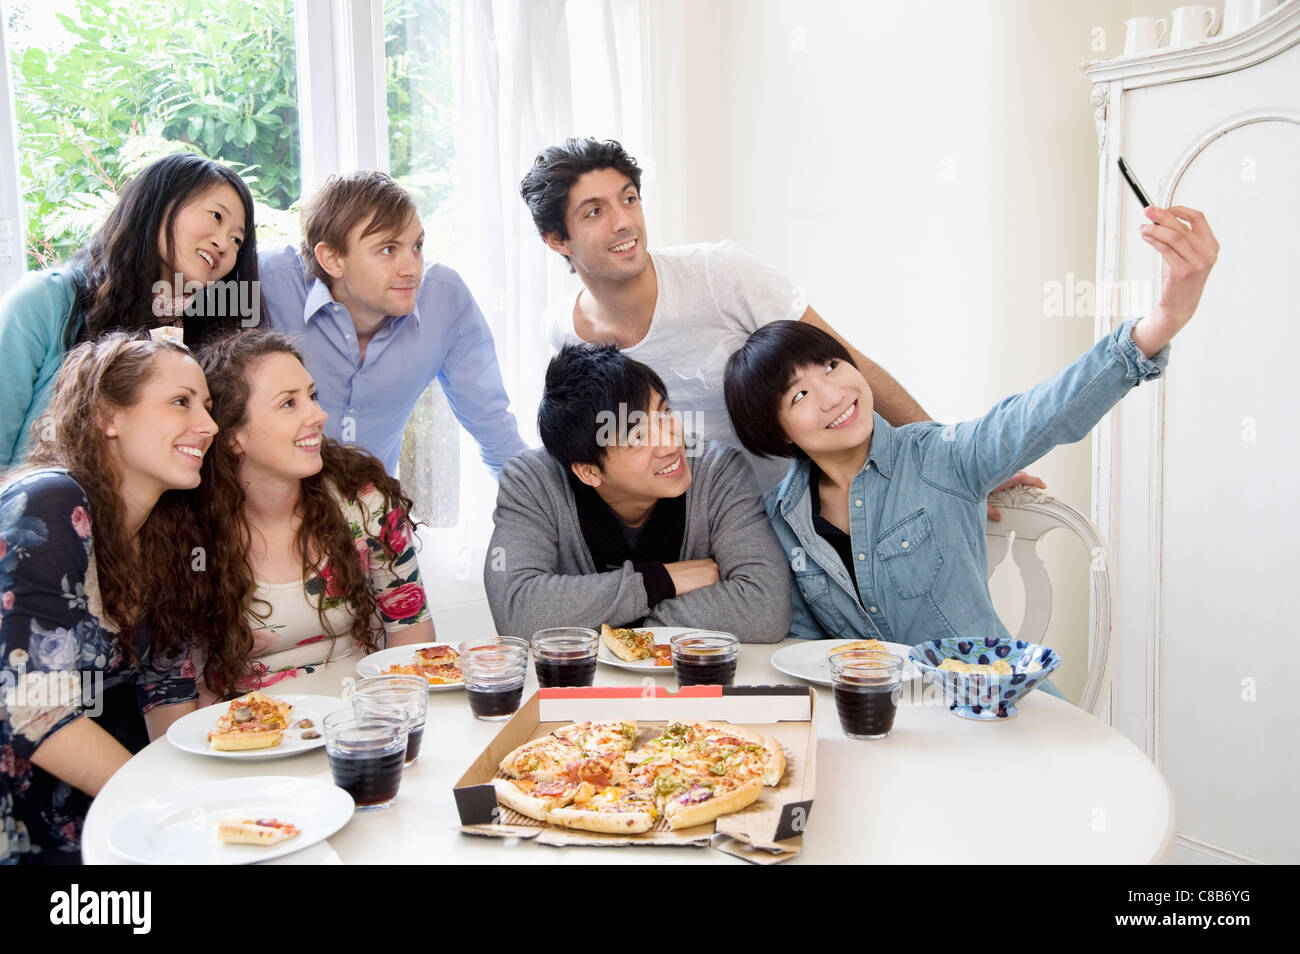 Group of friends taking self portrait photograph Stock Photo